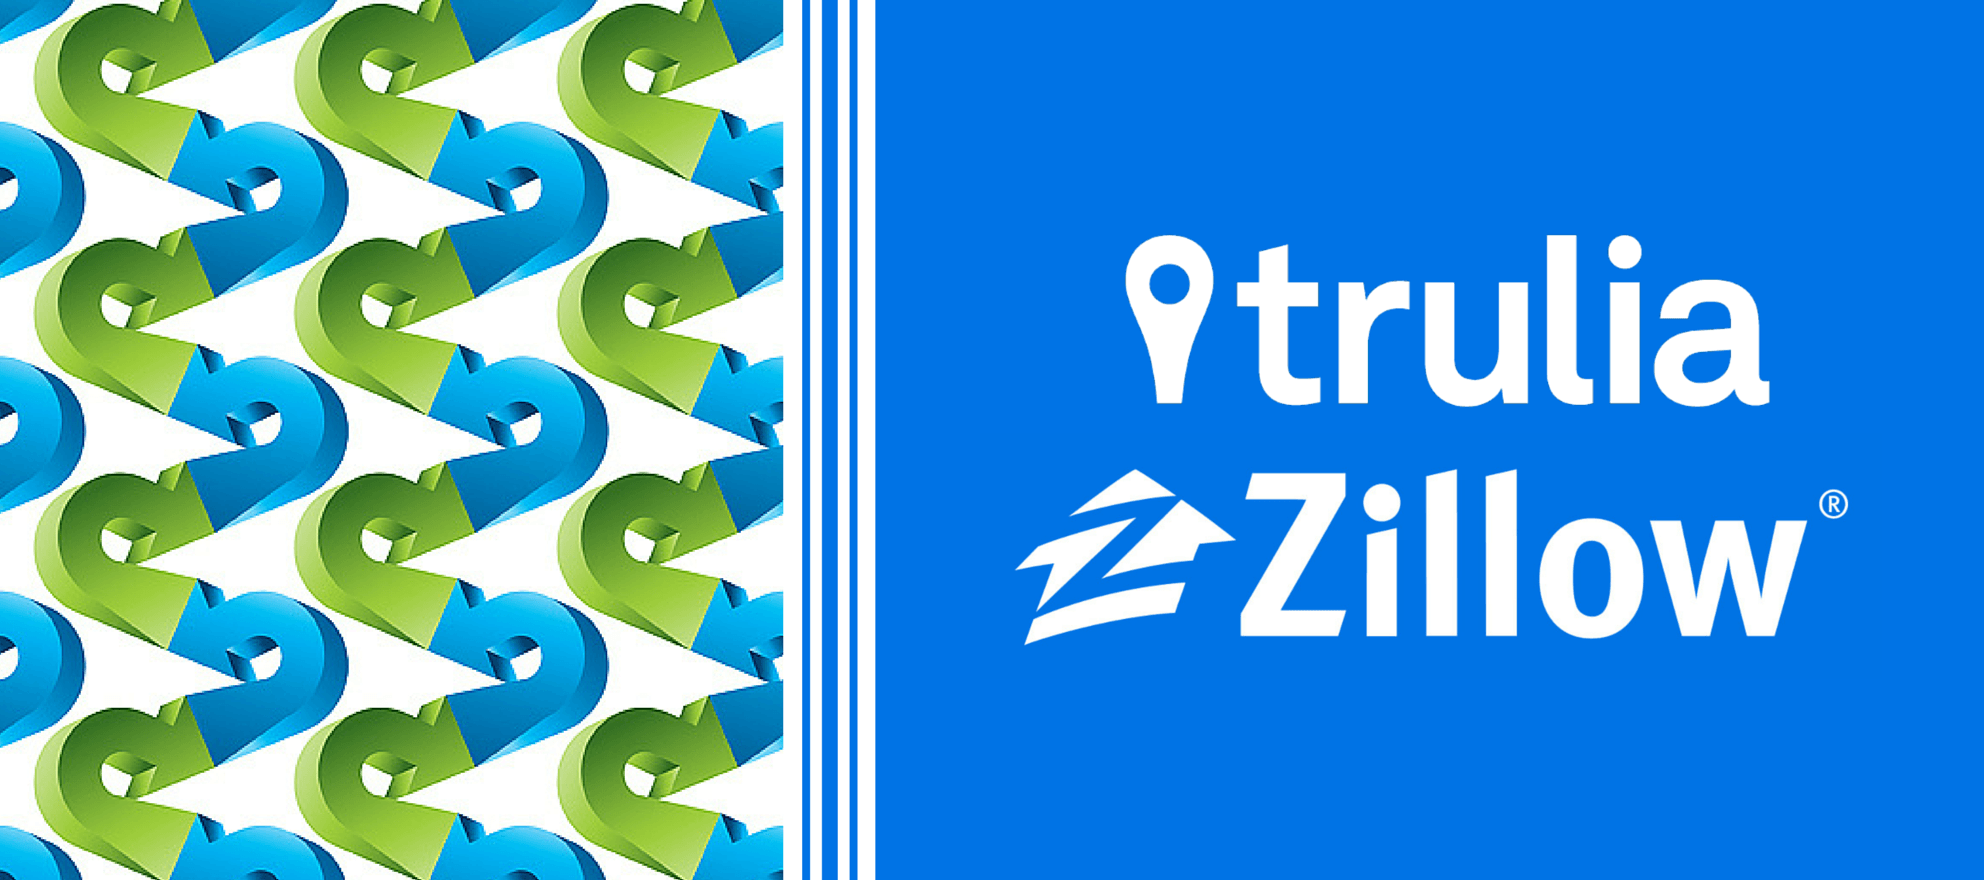 Trulia lays off hundreds of workers